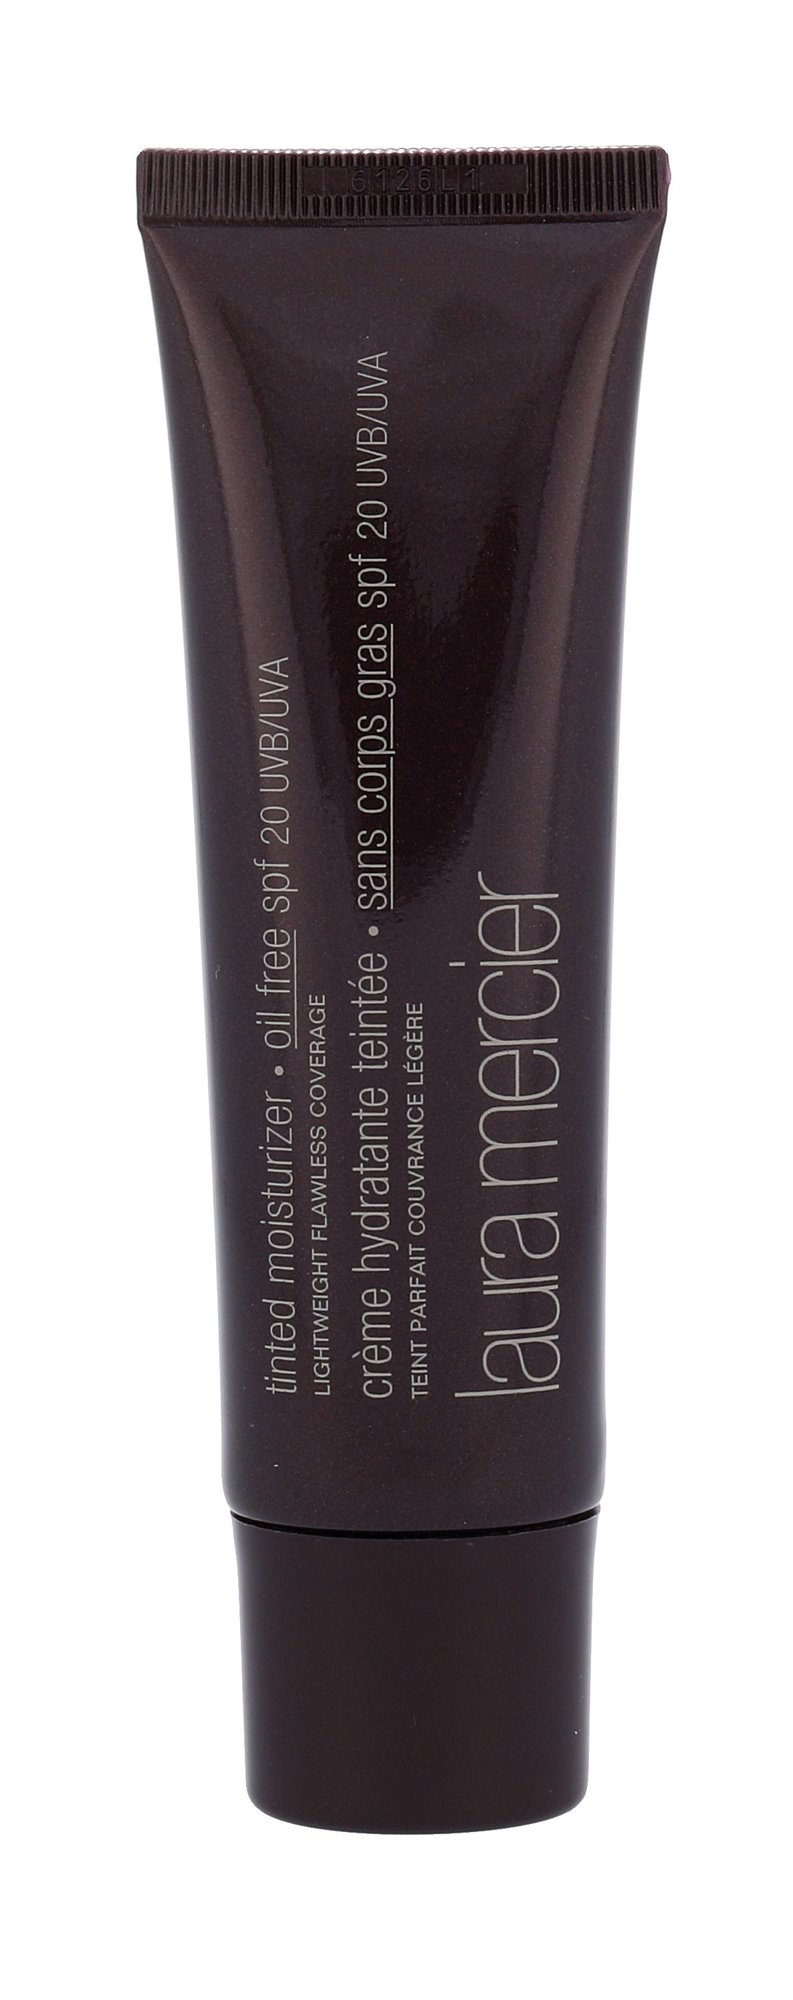 Laura Mercier Tinted Moisturizer Cosmetic 50ml Porcelain